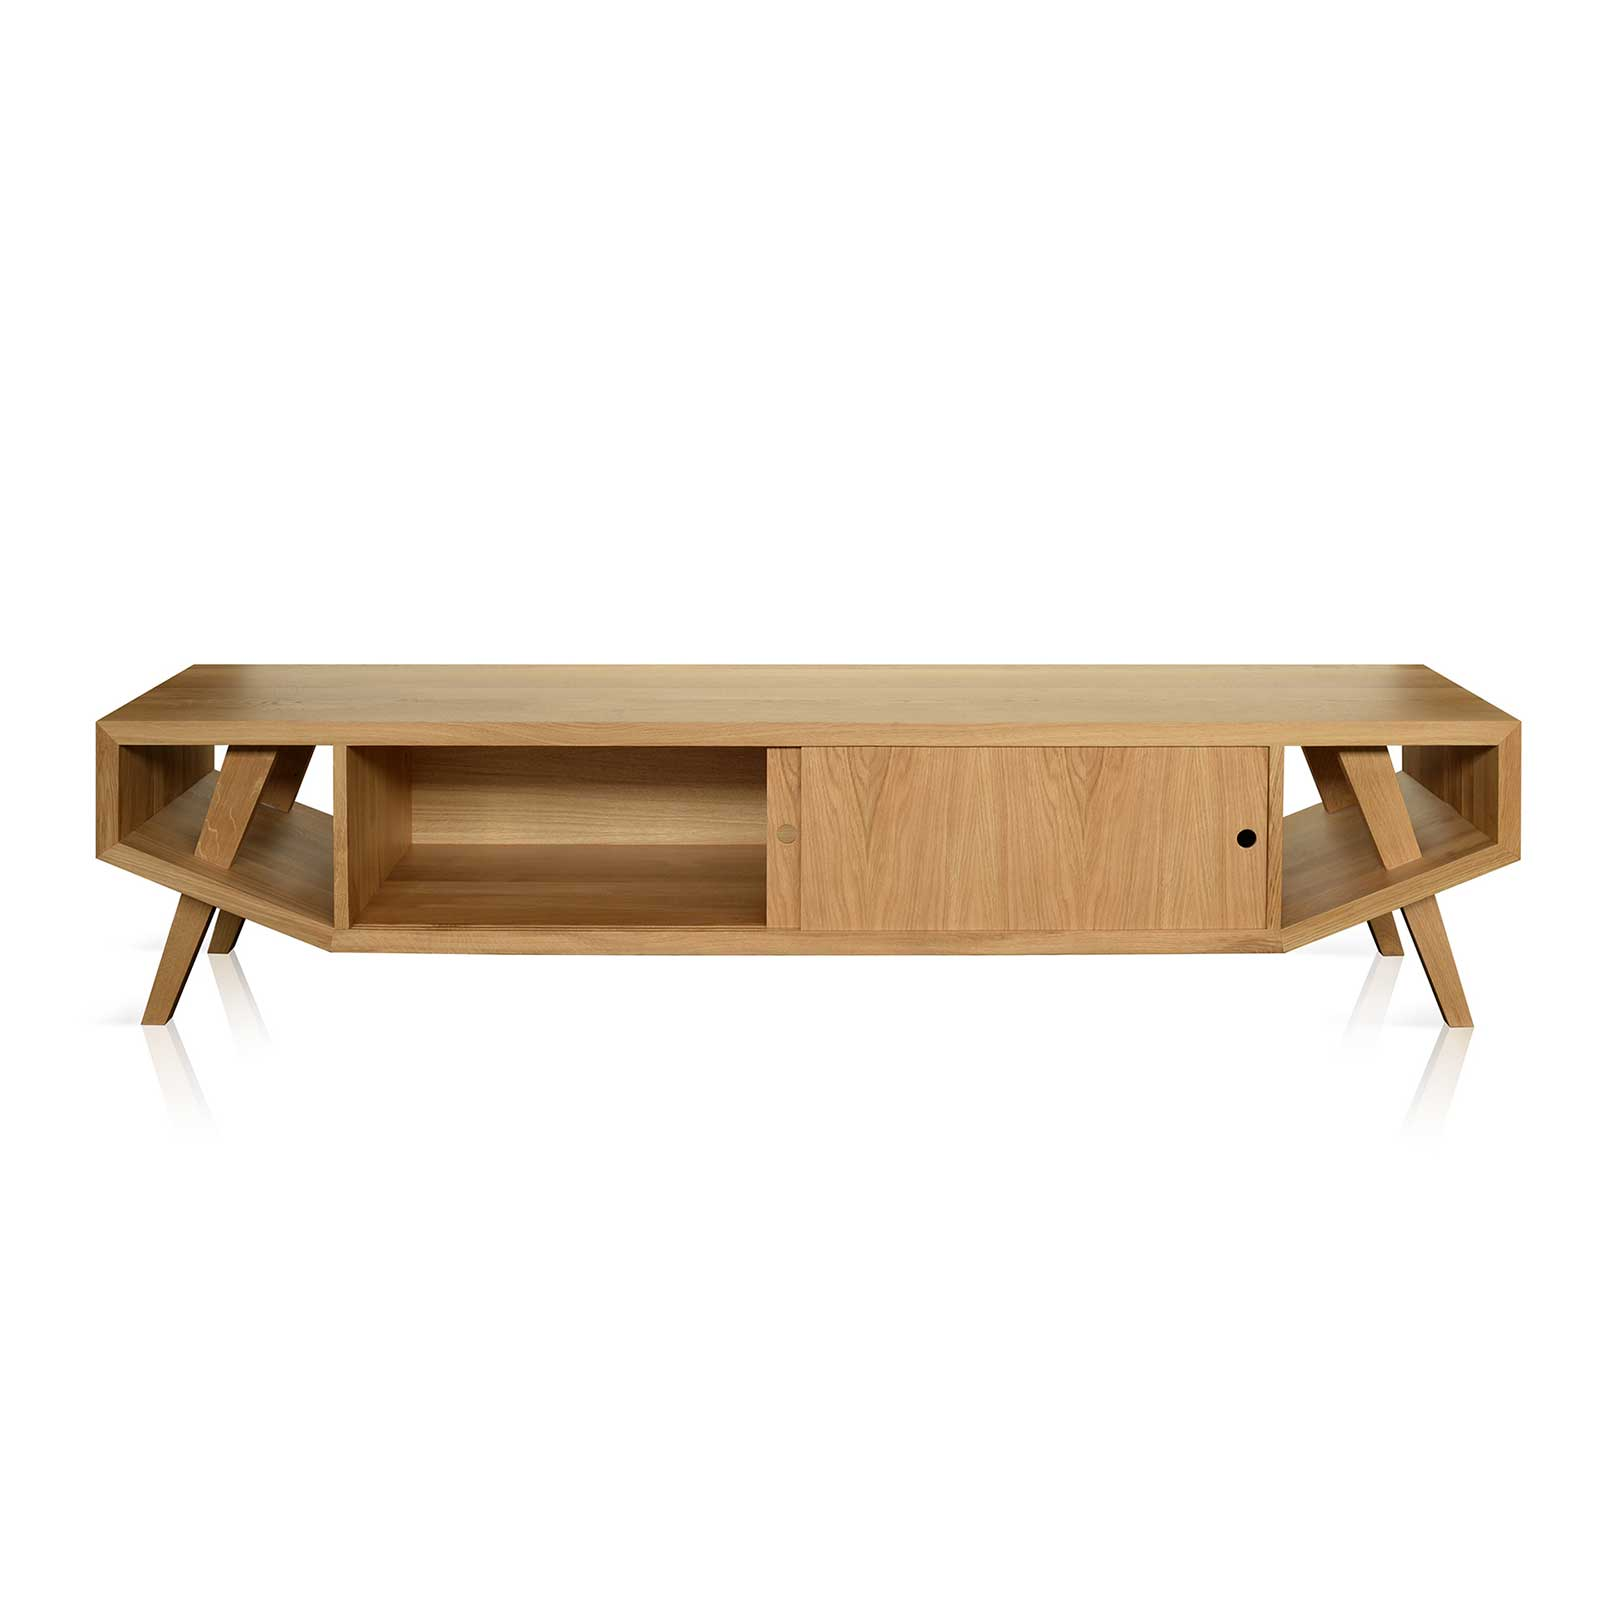 NU-O Eden TV UNIT 01 in OAK